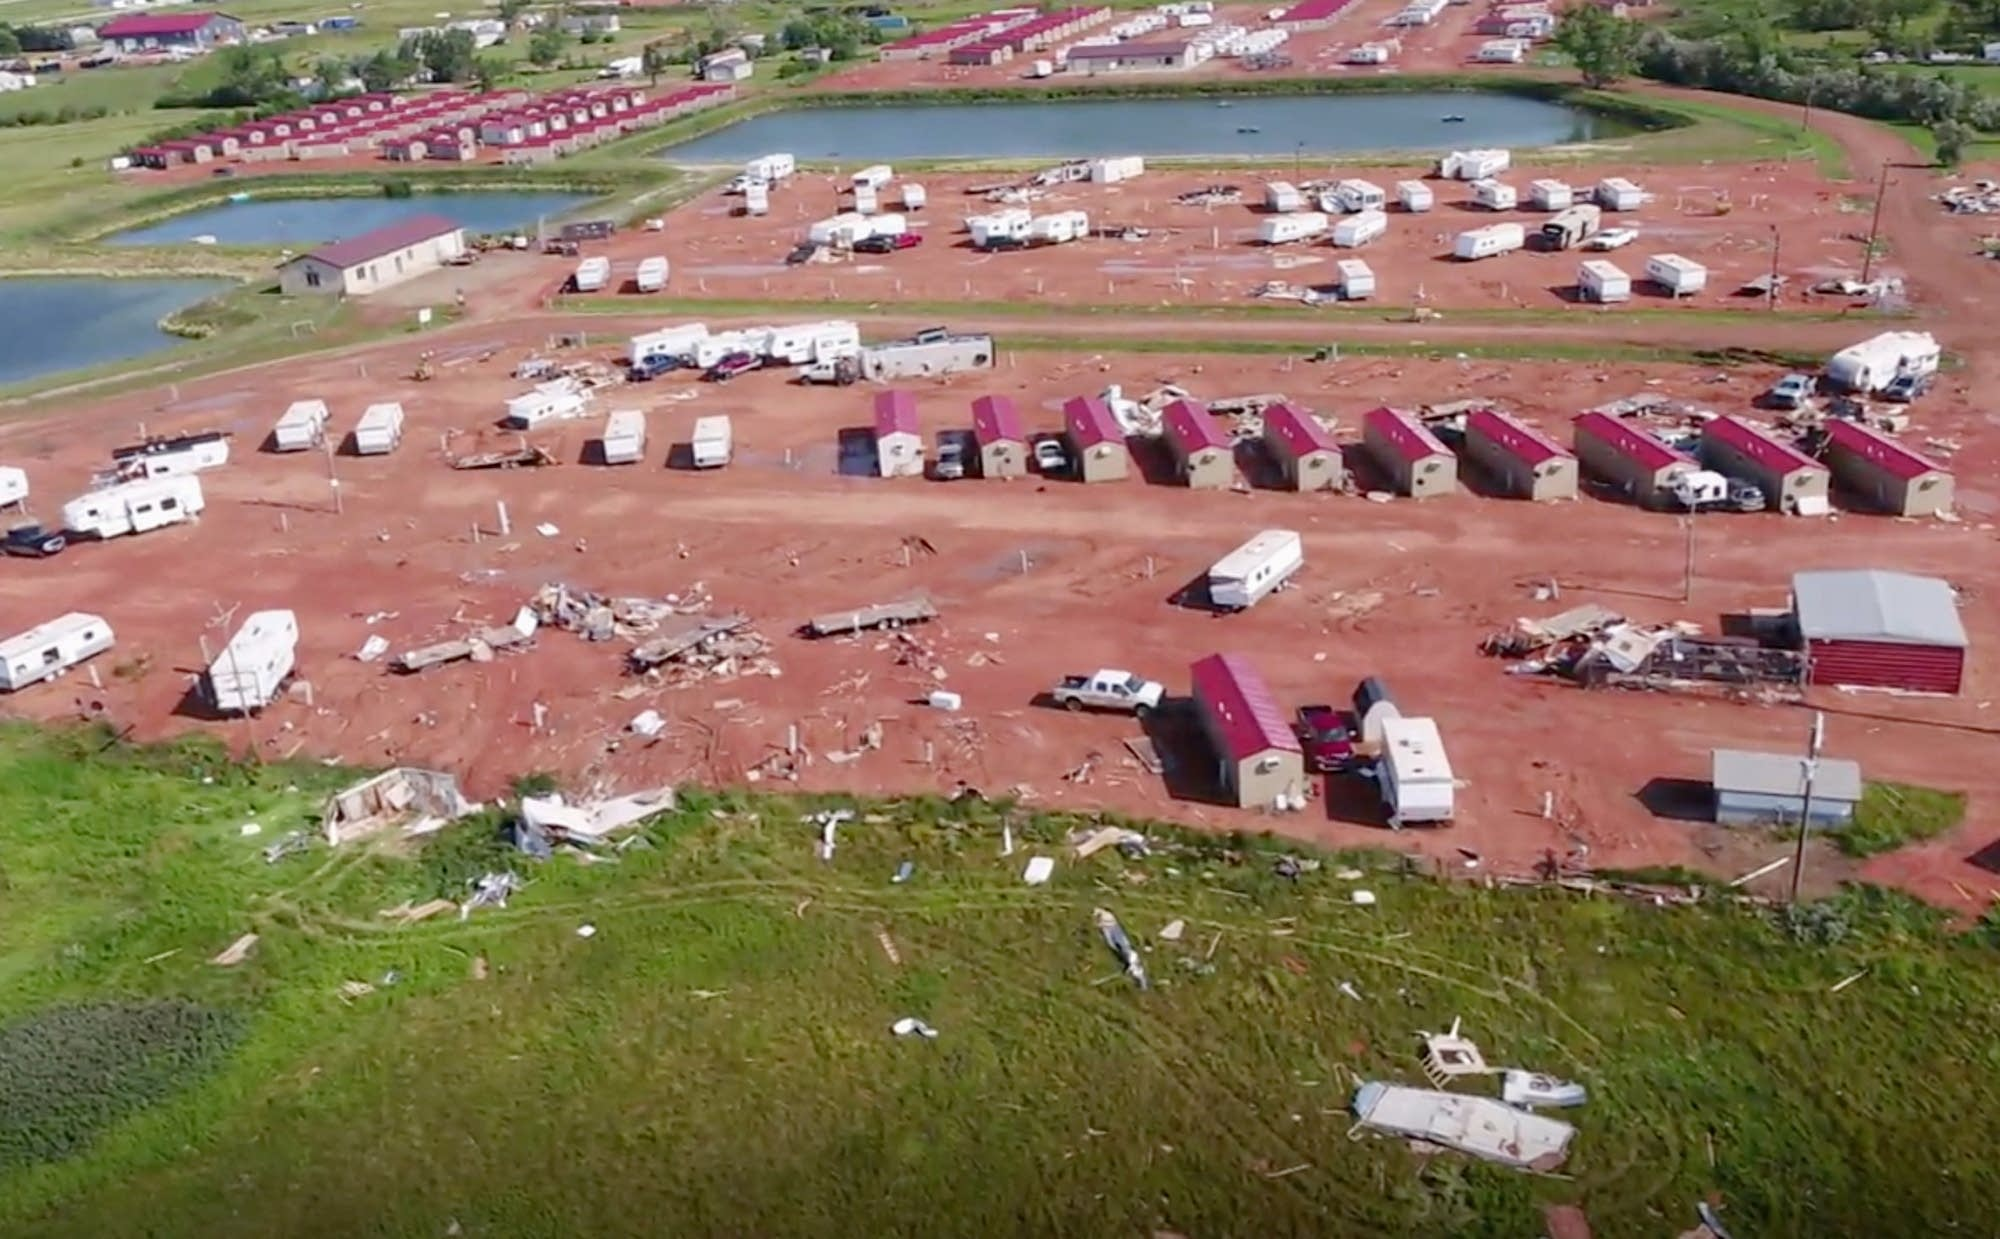 Storm damage at an RV park in North Dakota.